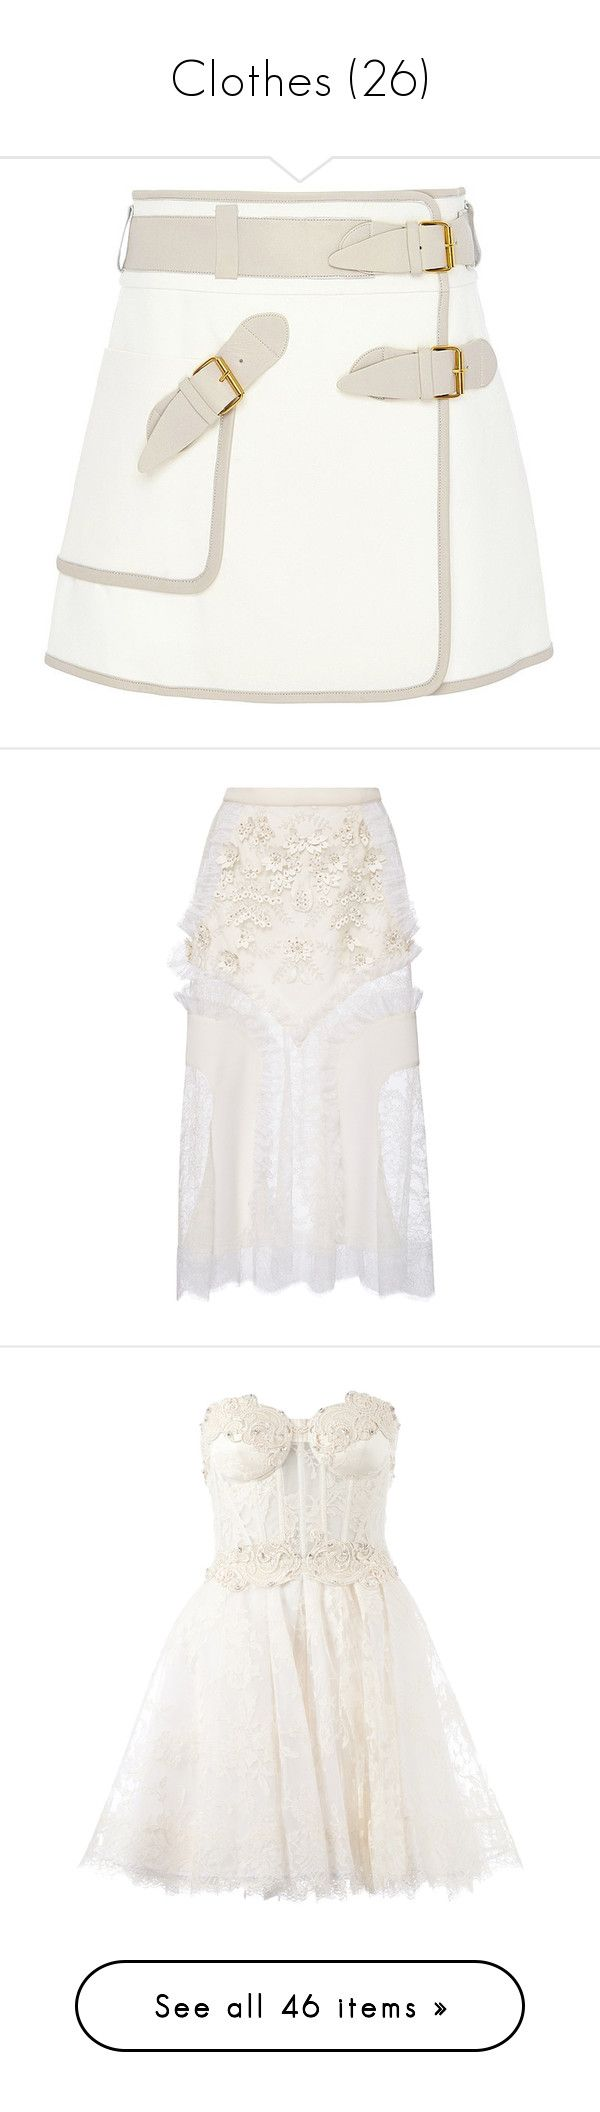 """""""Clothes (26)"""" by asia-12 ❤ liked on Polyvore featuring skirts, bottoms, cotton wrap skirt, military skirts, white a line skirt, a line wrap skirt, knee length a line skirt, rodarte, white and floral lace skirt"""